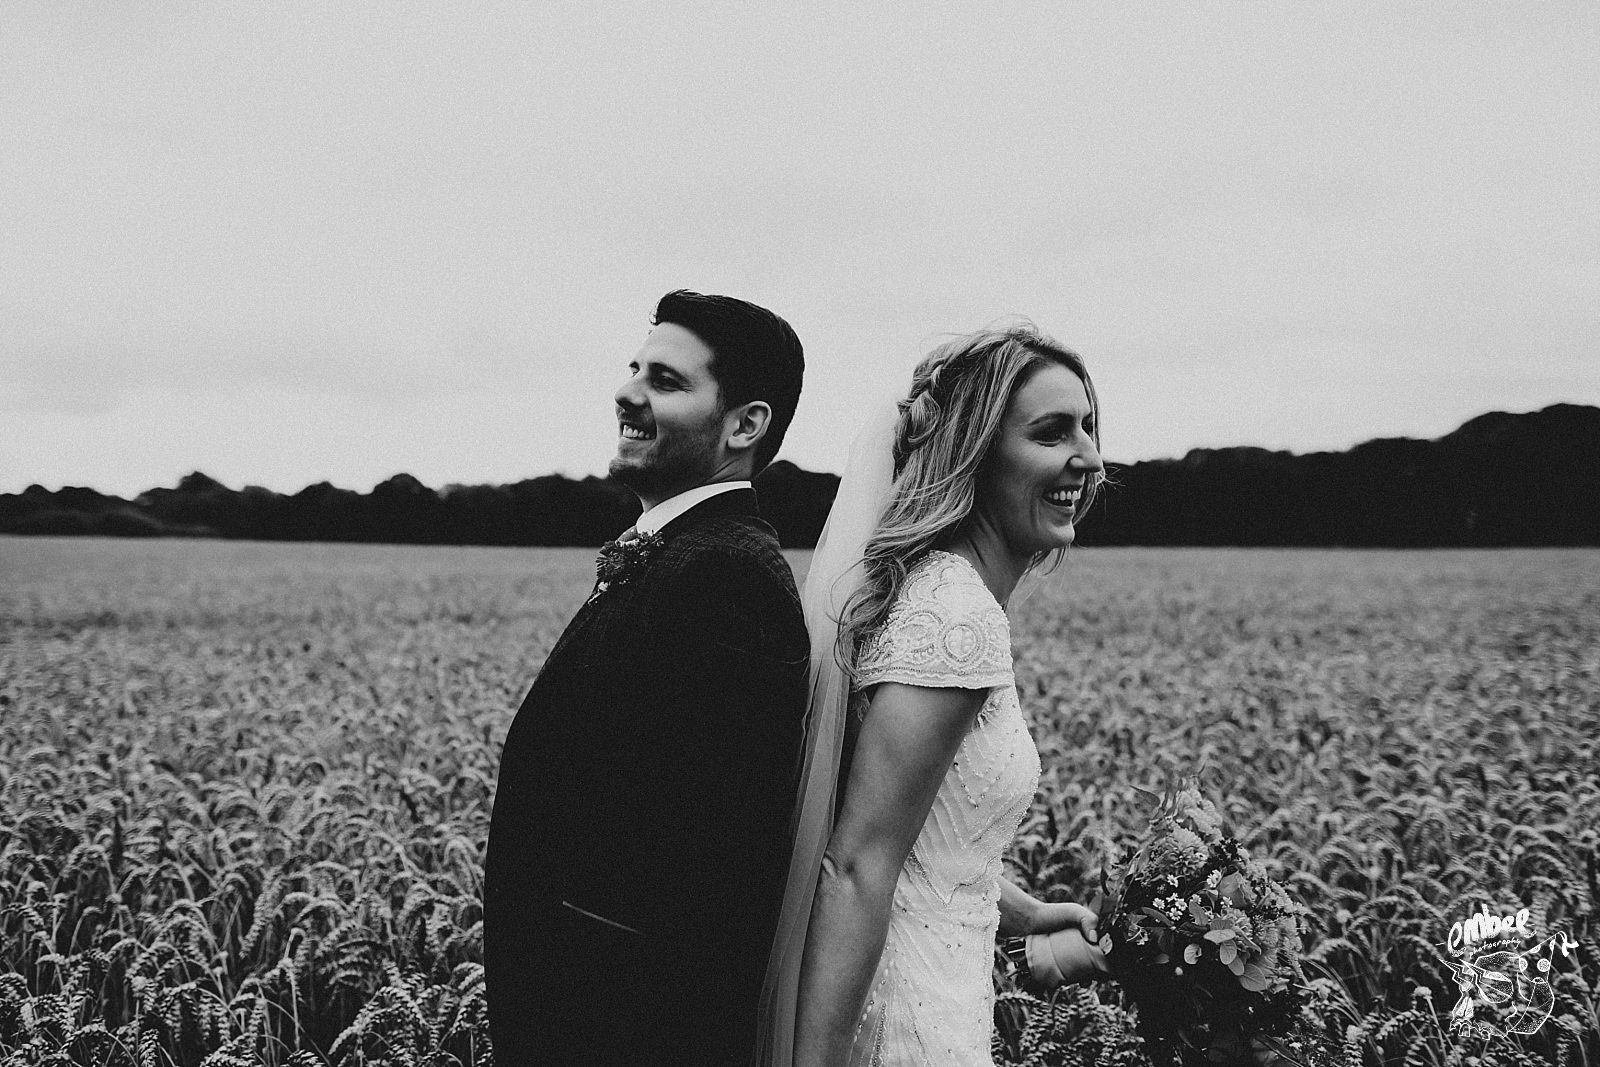 back to back bride and groom in field